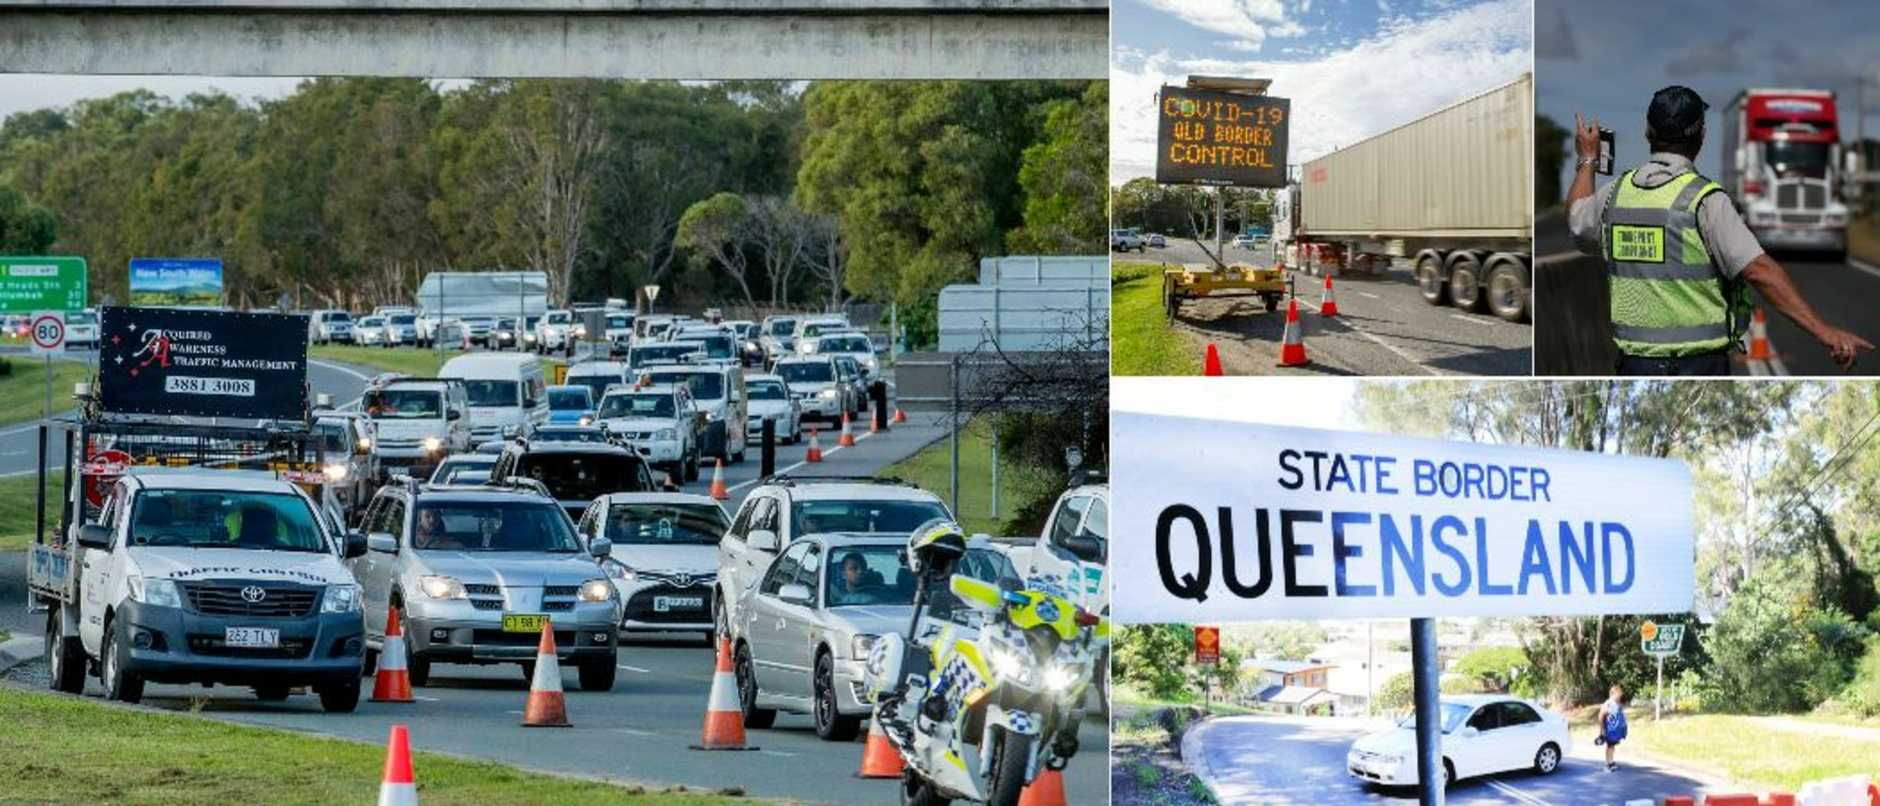 Qld borders: 20km queues expected as police checks ramp up for border reopening